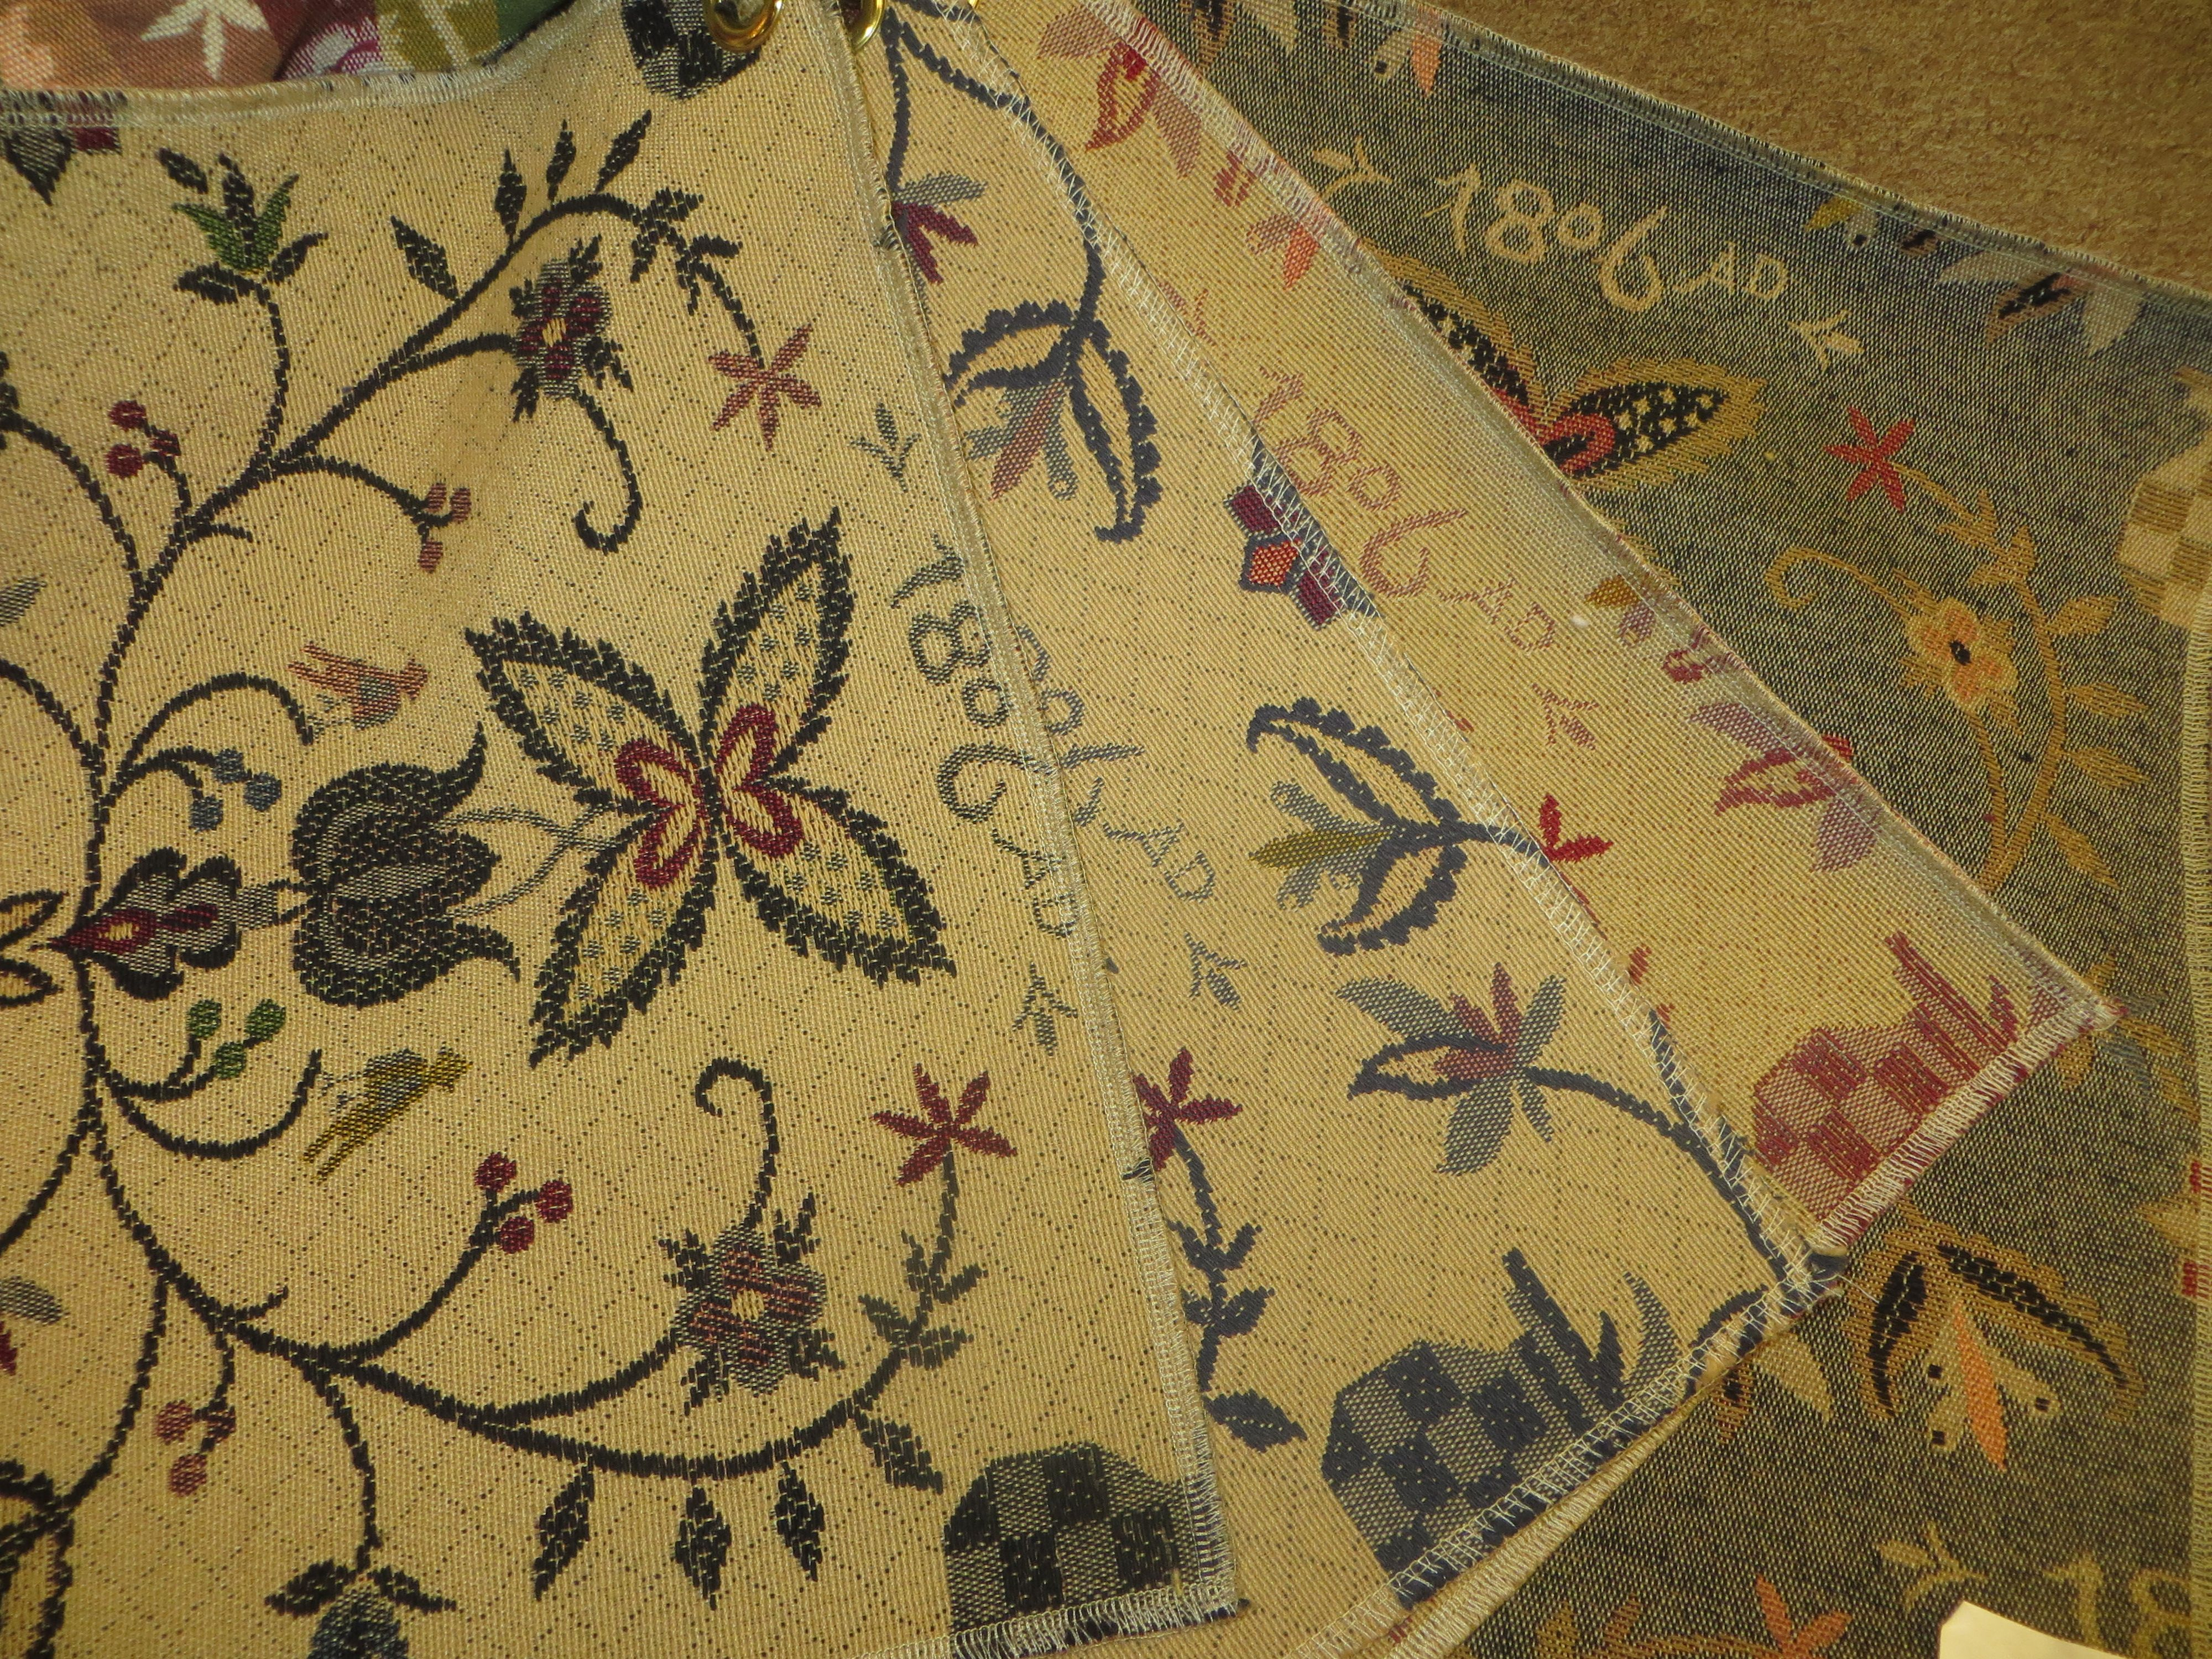 colonial print upholstered furniture fabric www theredbrickcottage